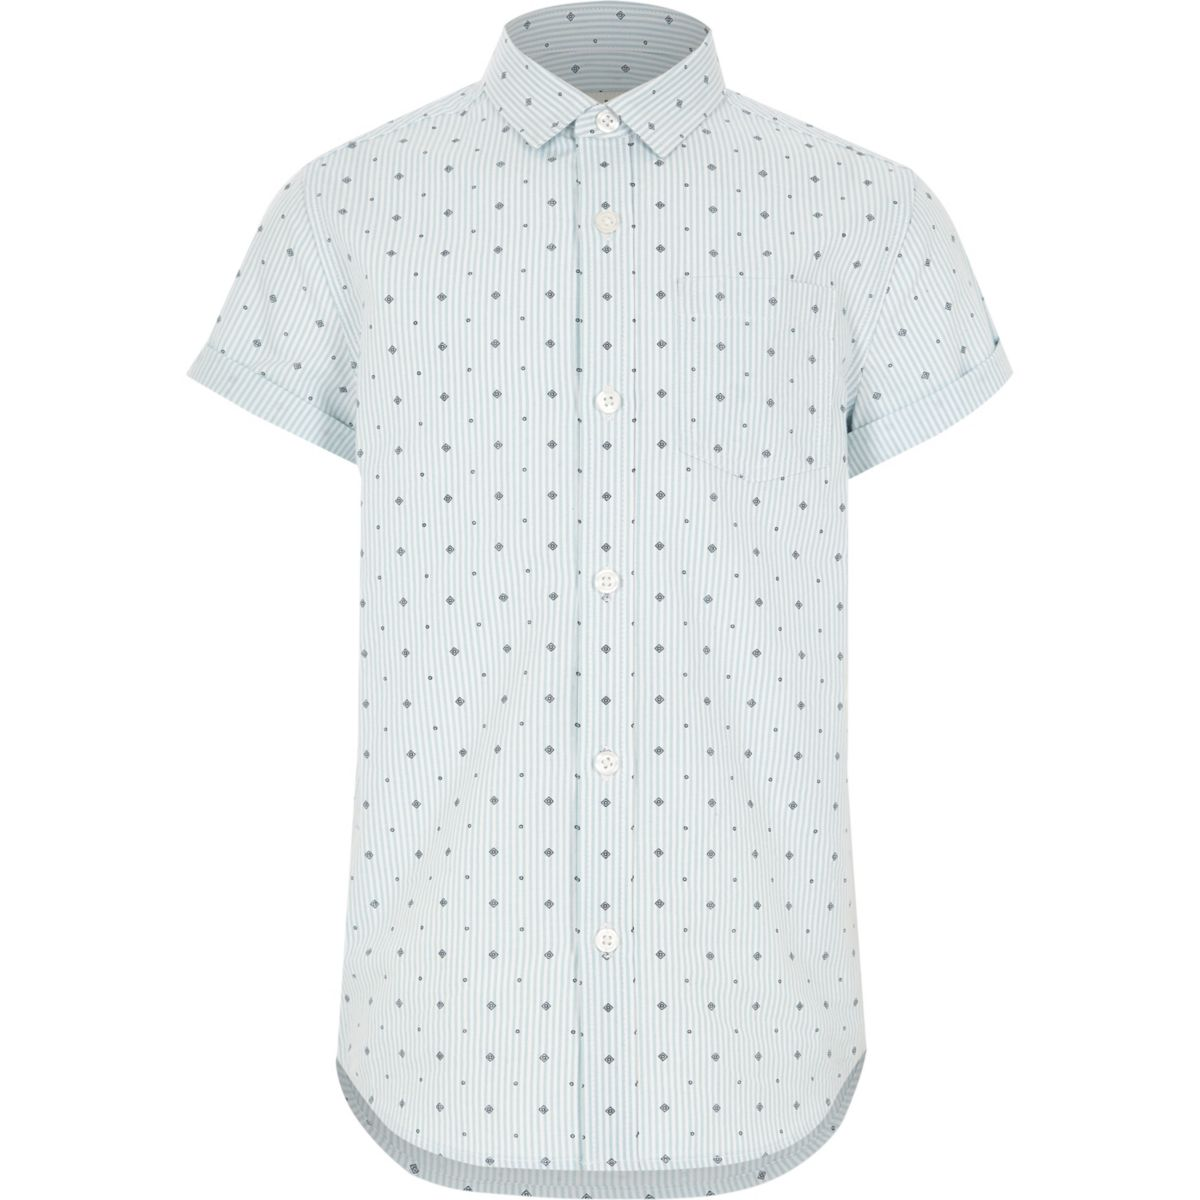 Boys light green printed short sleeve shirt